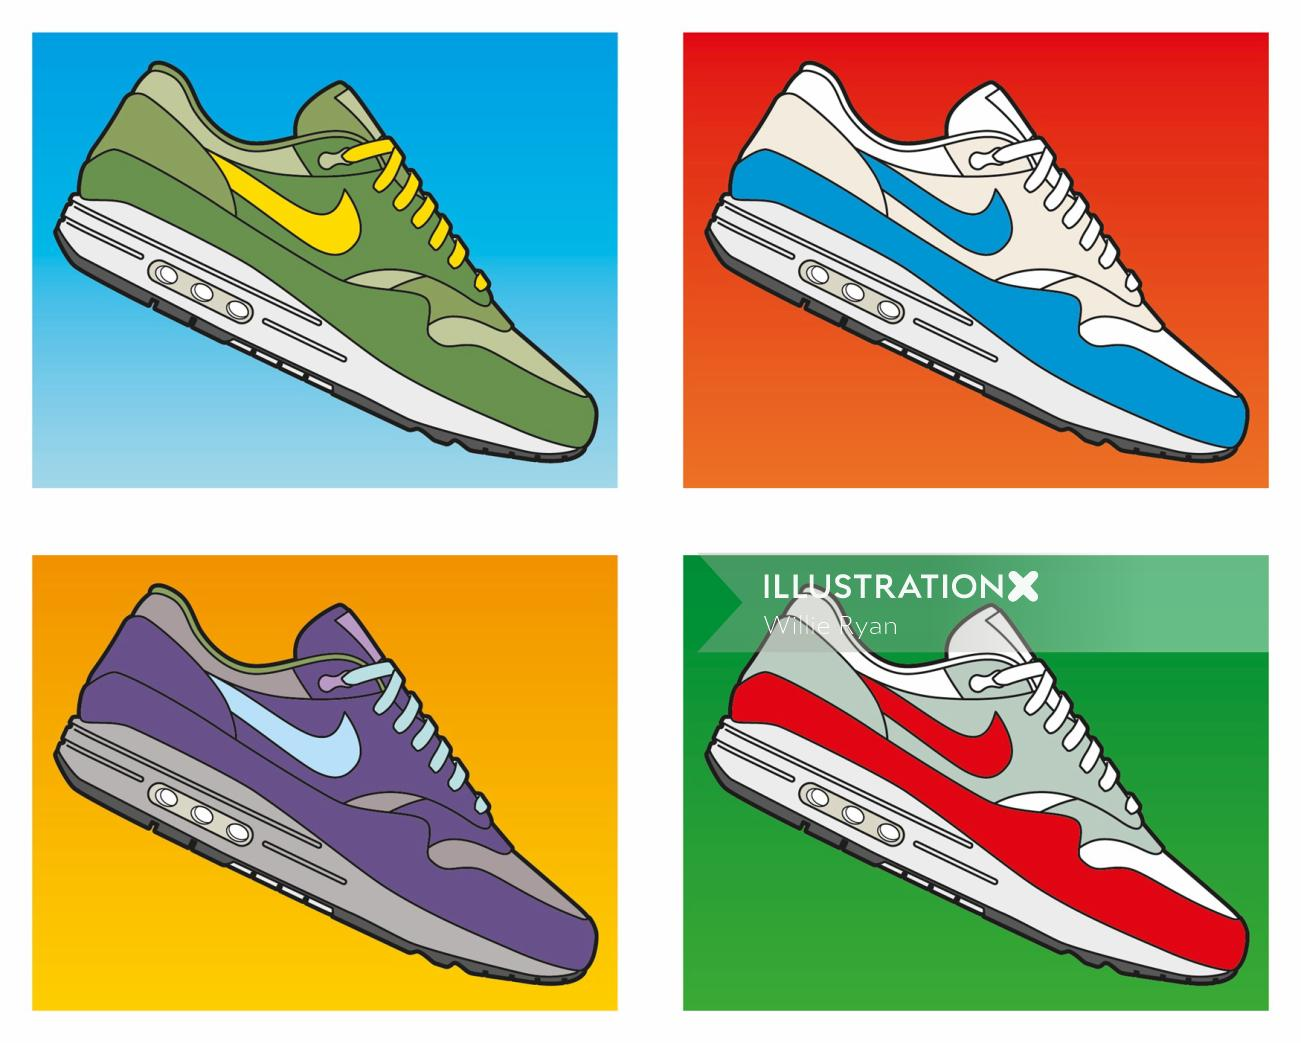 NIKE trainers image hommage to NIKE AIR Willie,Ryan,illustrator,illustration, graphic,symbol,logo,ic